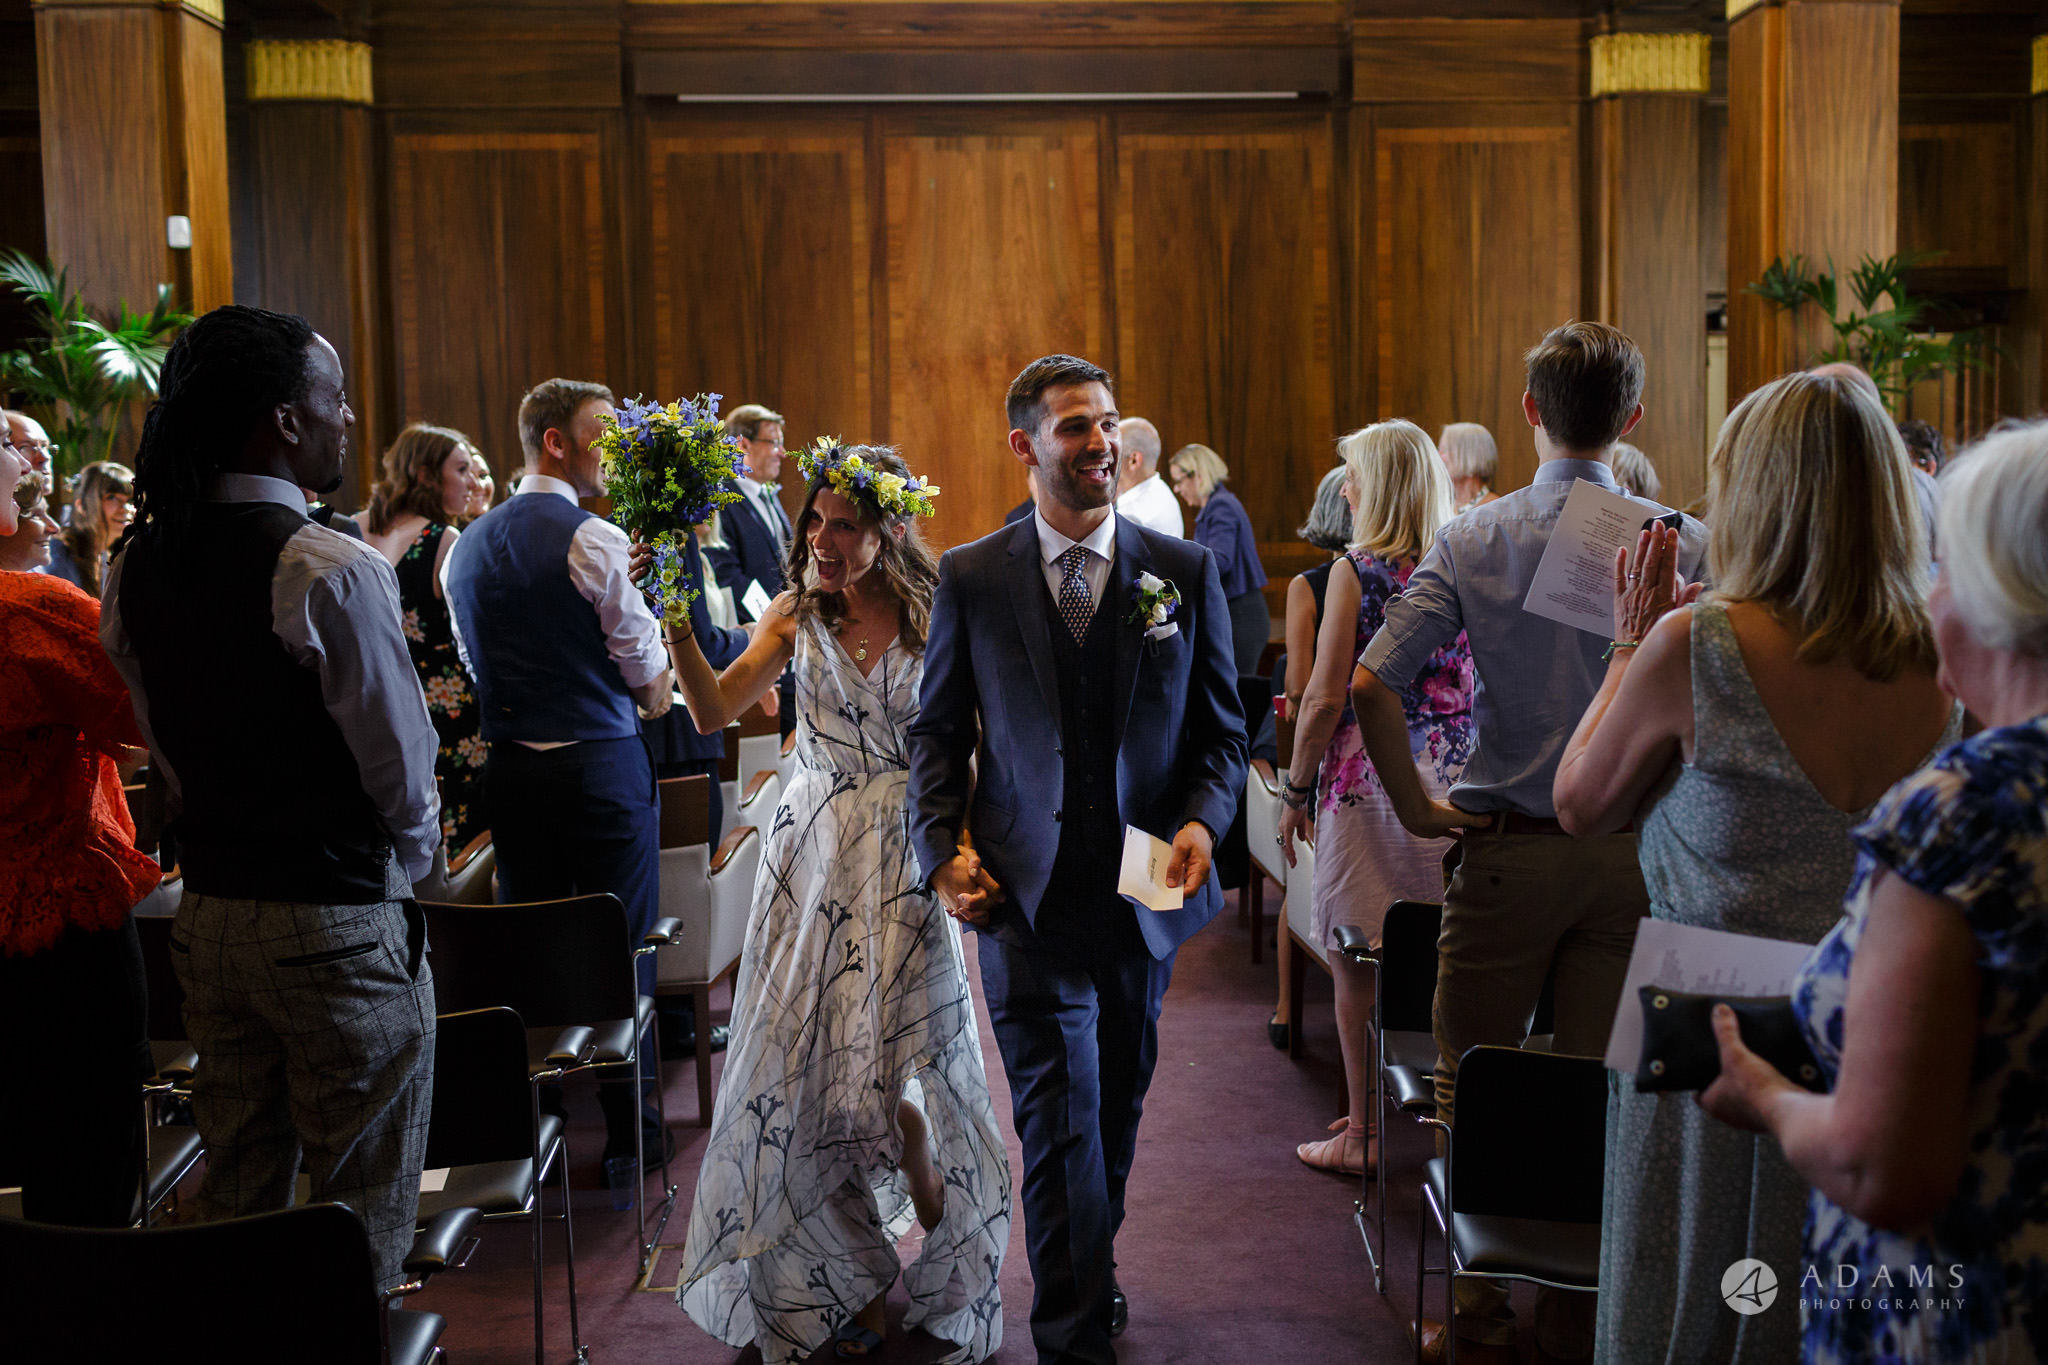 Clissold house wedding the married couple leaving the ceremony room